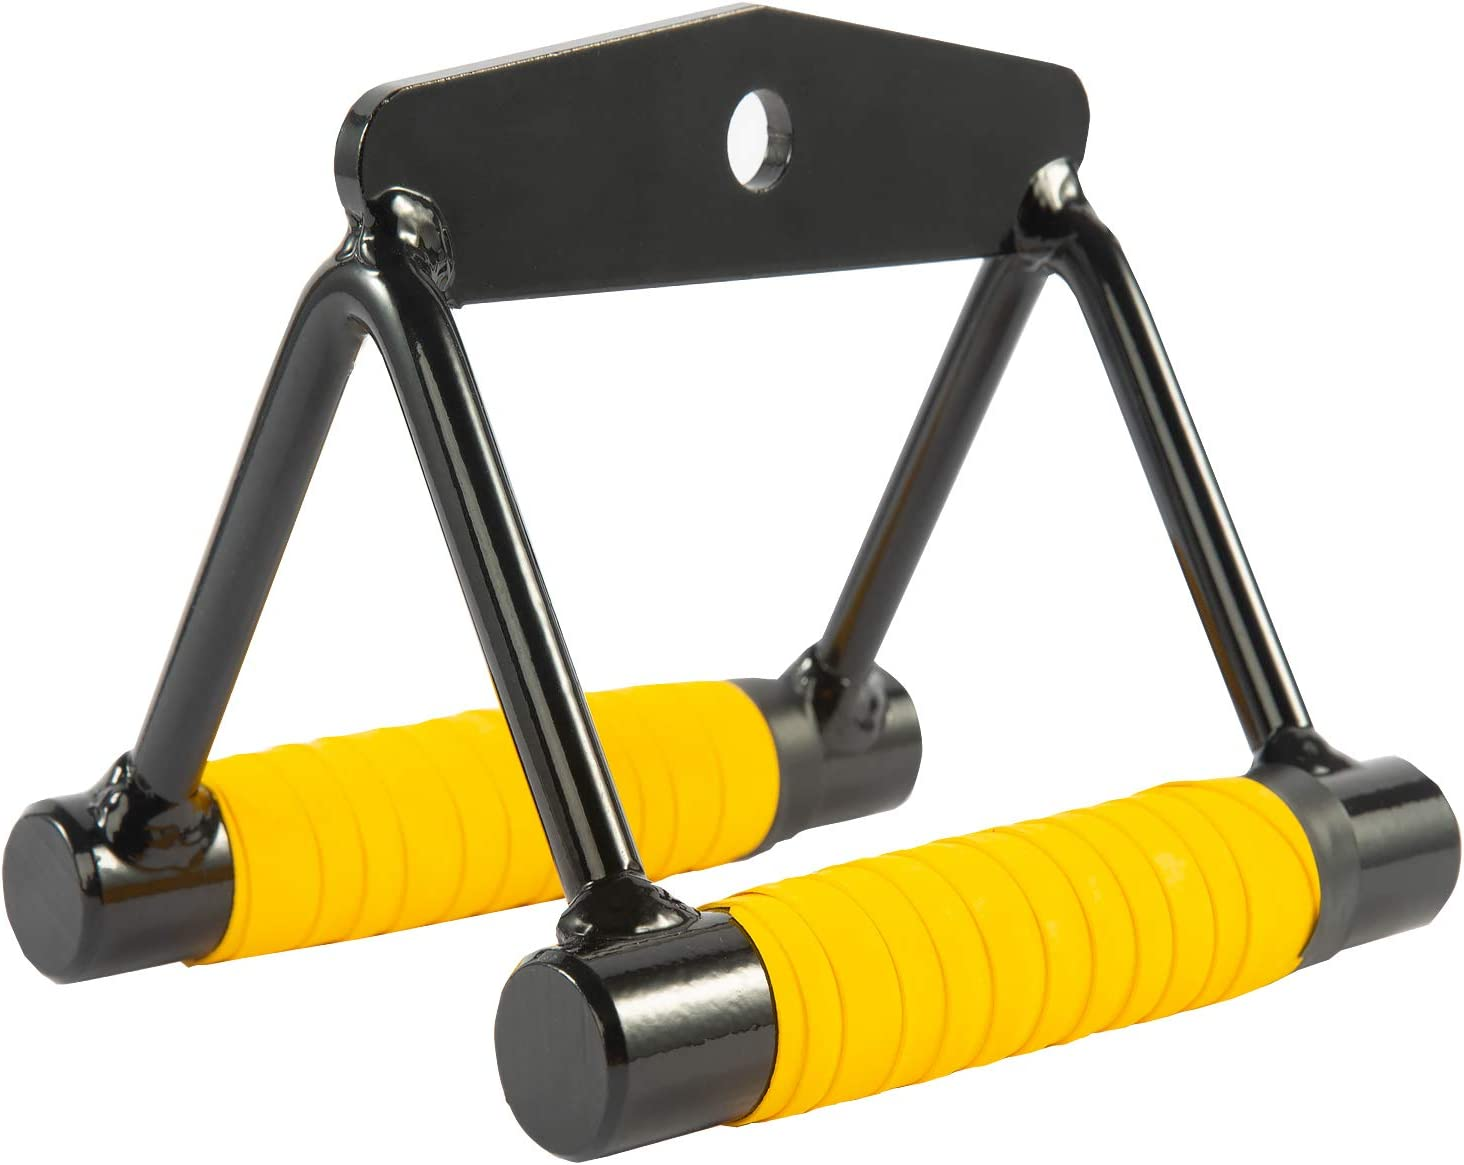 Cable Machine Handle Attachments, Pull Down Exercise Handles of Home Gym Accessories (Black Row) : Sports & Outdoors